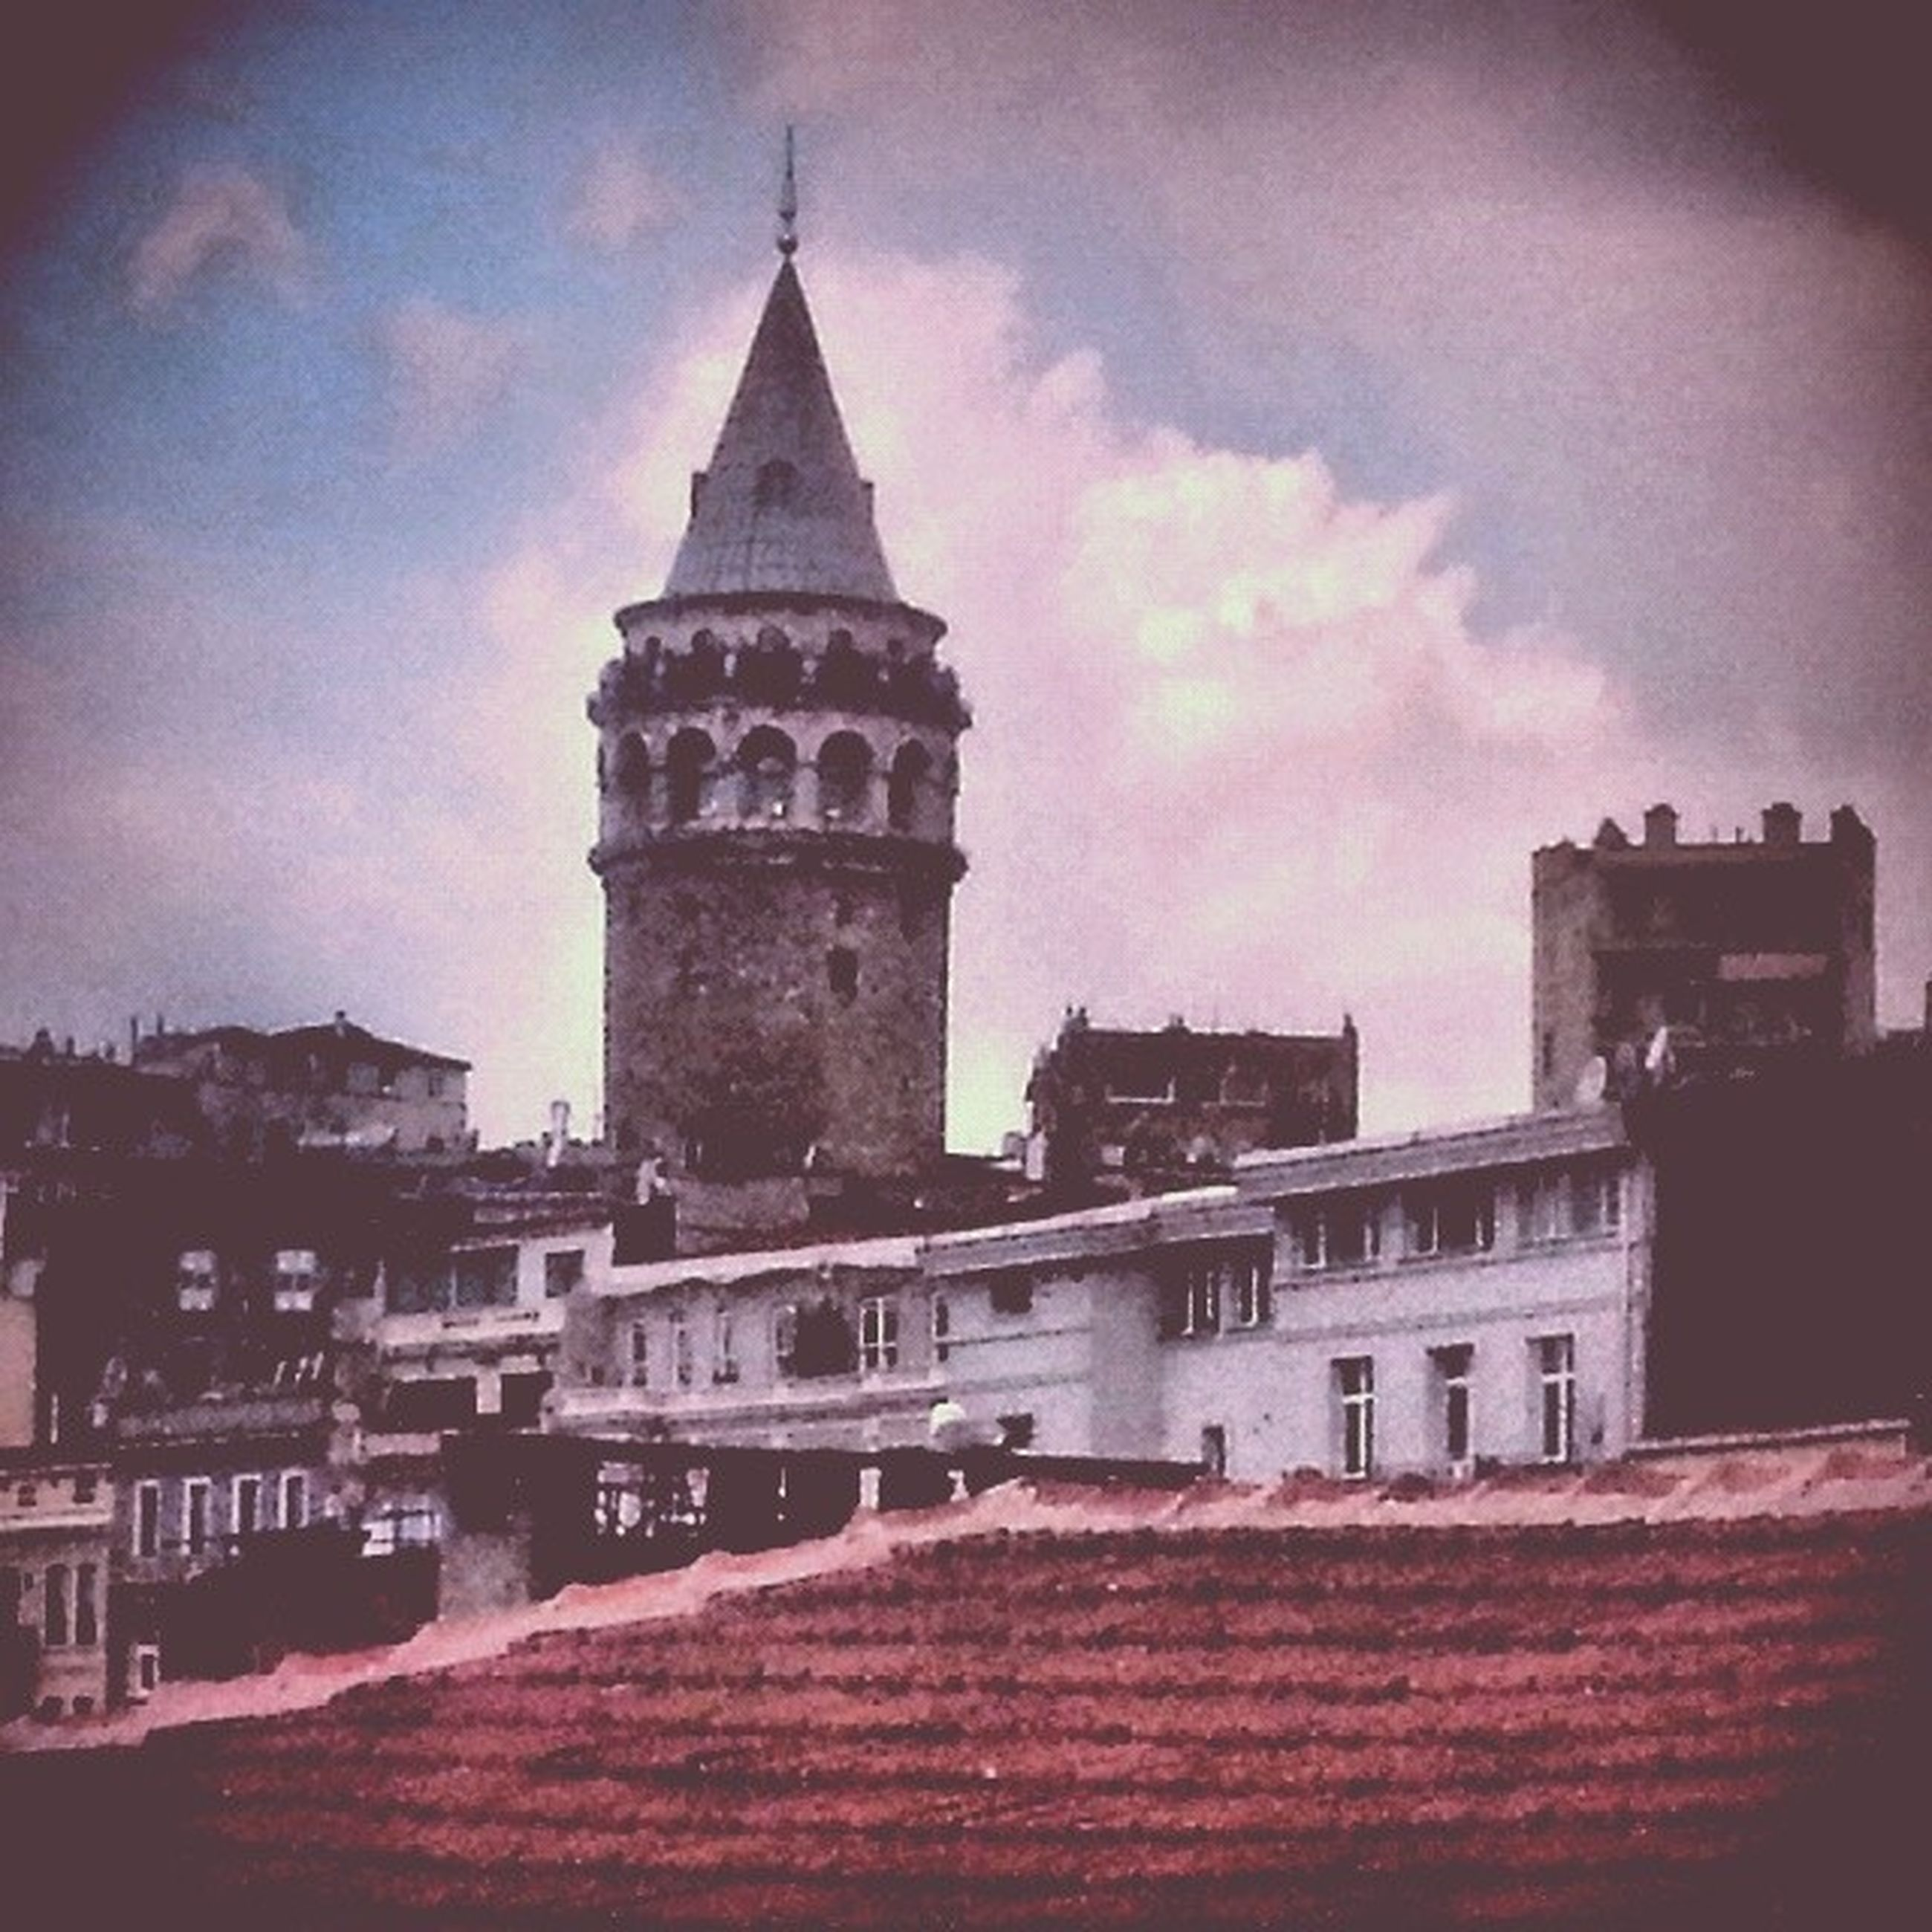 architecture, building exterior, built structure, sky, low angle view, cloud - sky, tower, clock tower, church, city, religion, dusk, travel destinations, place of worship, famous place, history, cloudy, outdoors, cloud